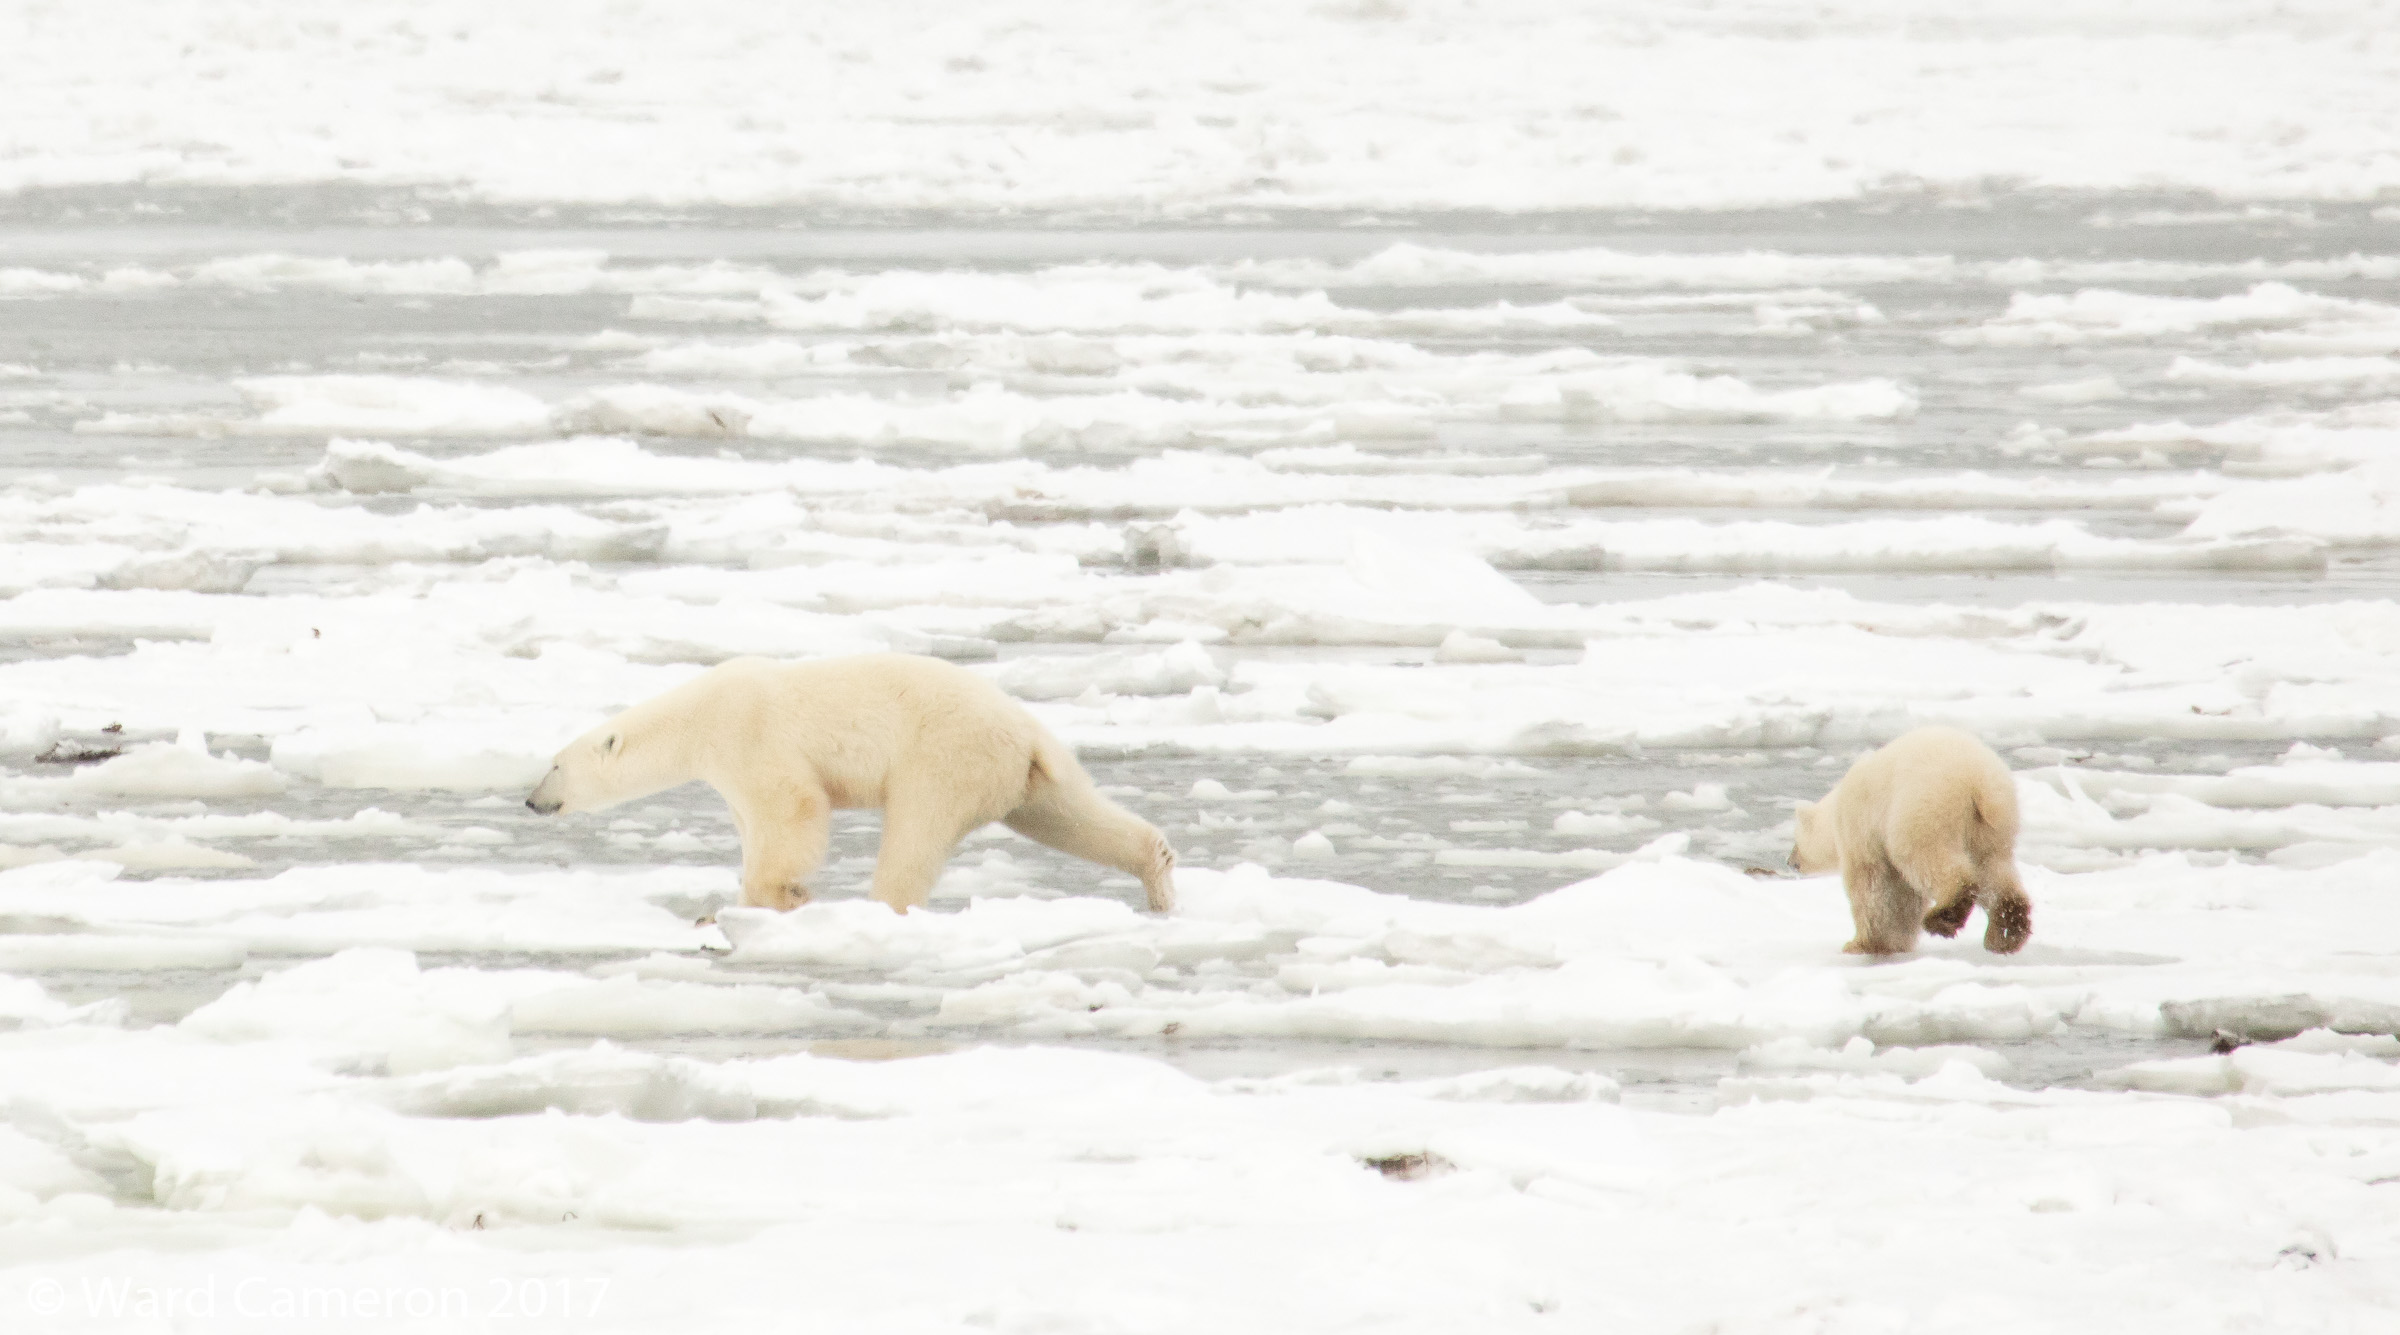 Polar bears jumping from ice floe to ice floe.